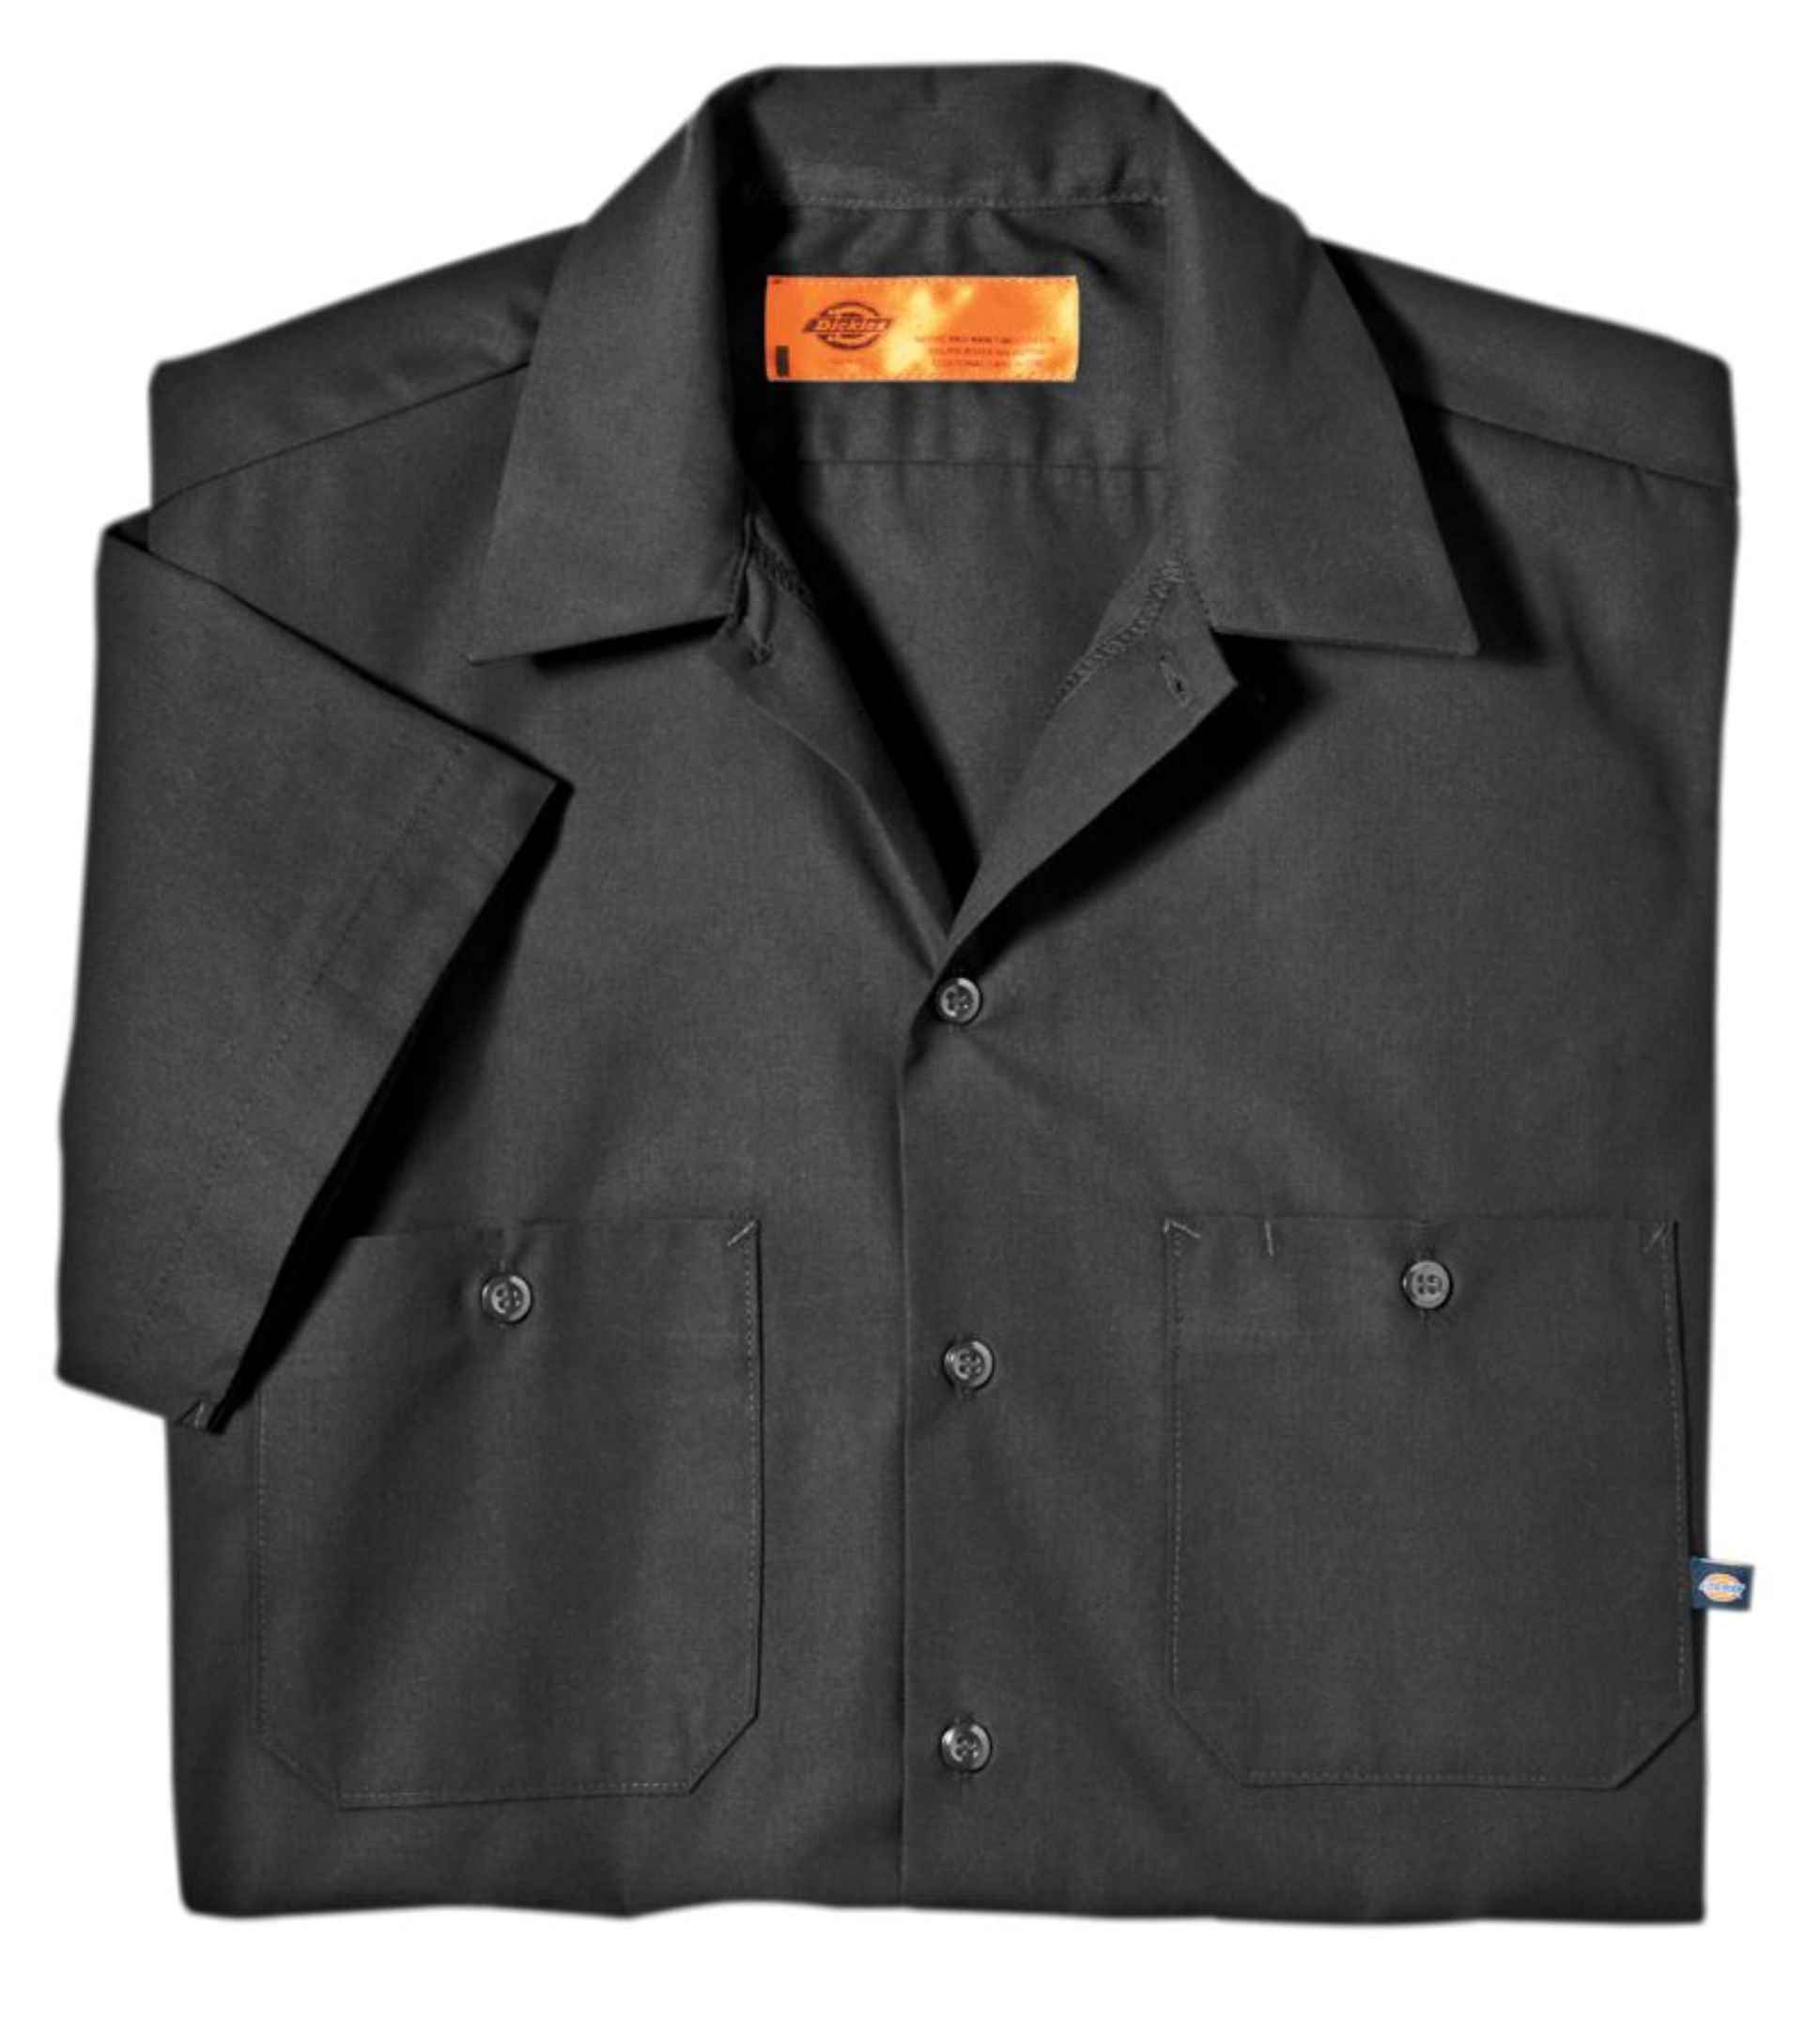 Dickies Occupational Workwear LS535CH 2XL Polyester/ Cotton Men's Short Sleeve Industrial Work Shirt, 2X-Large, Dark Charcoal